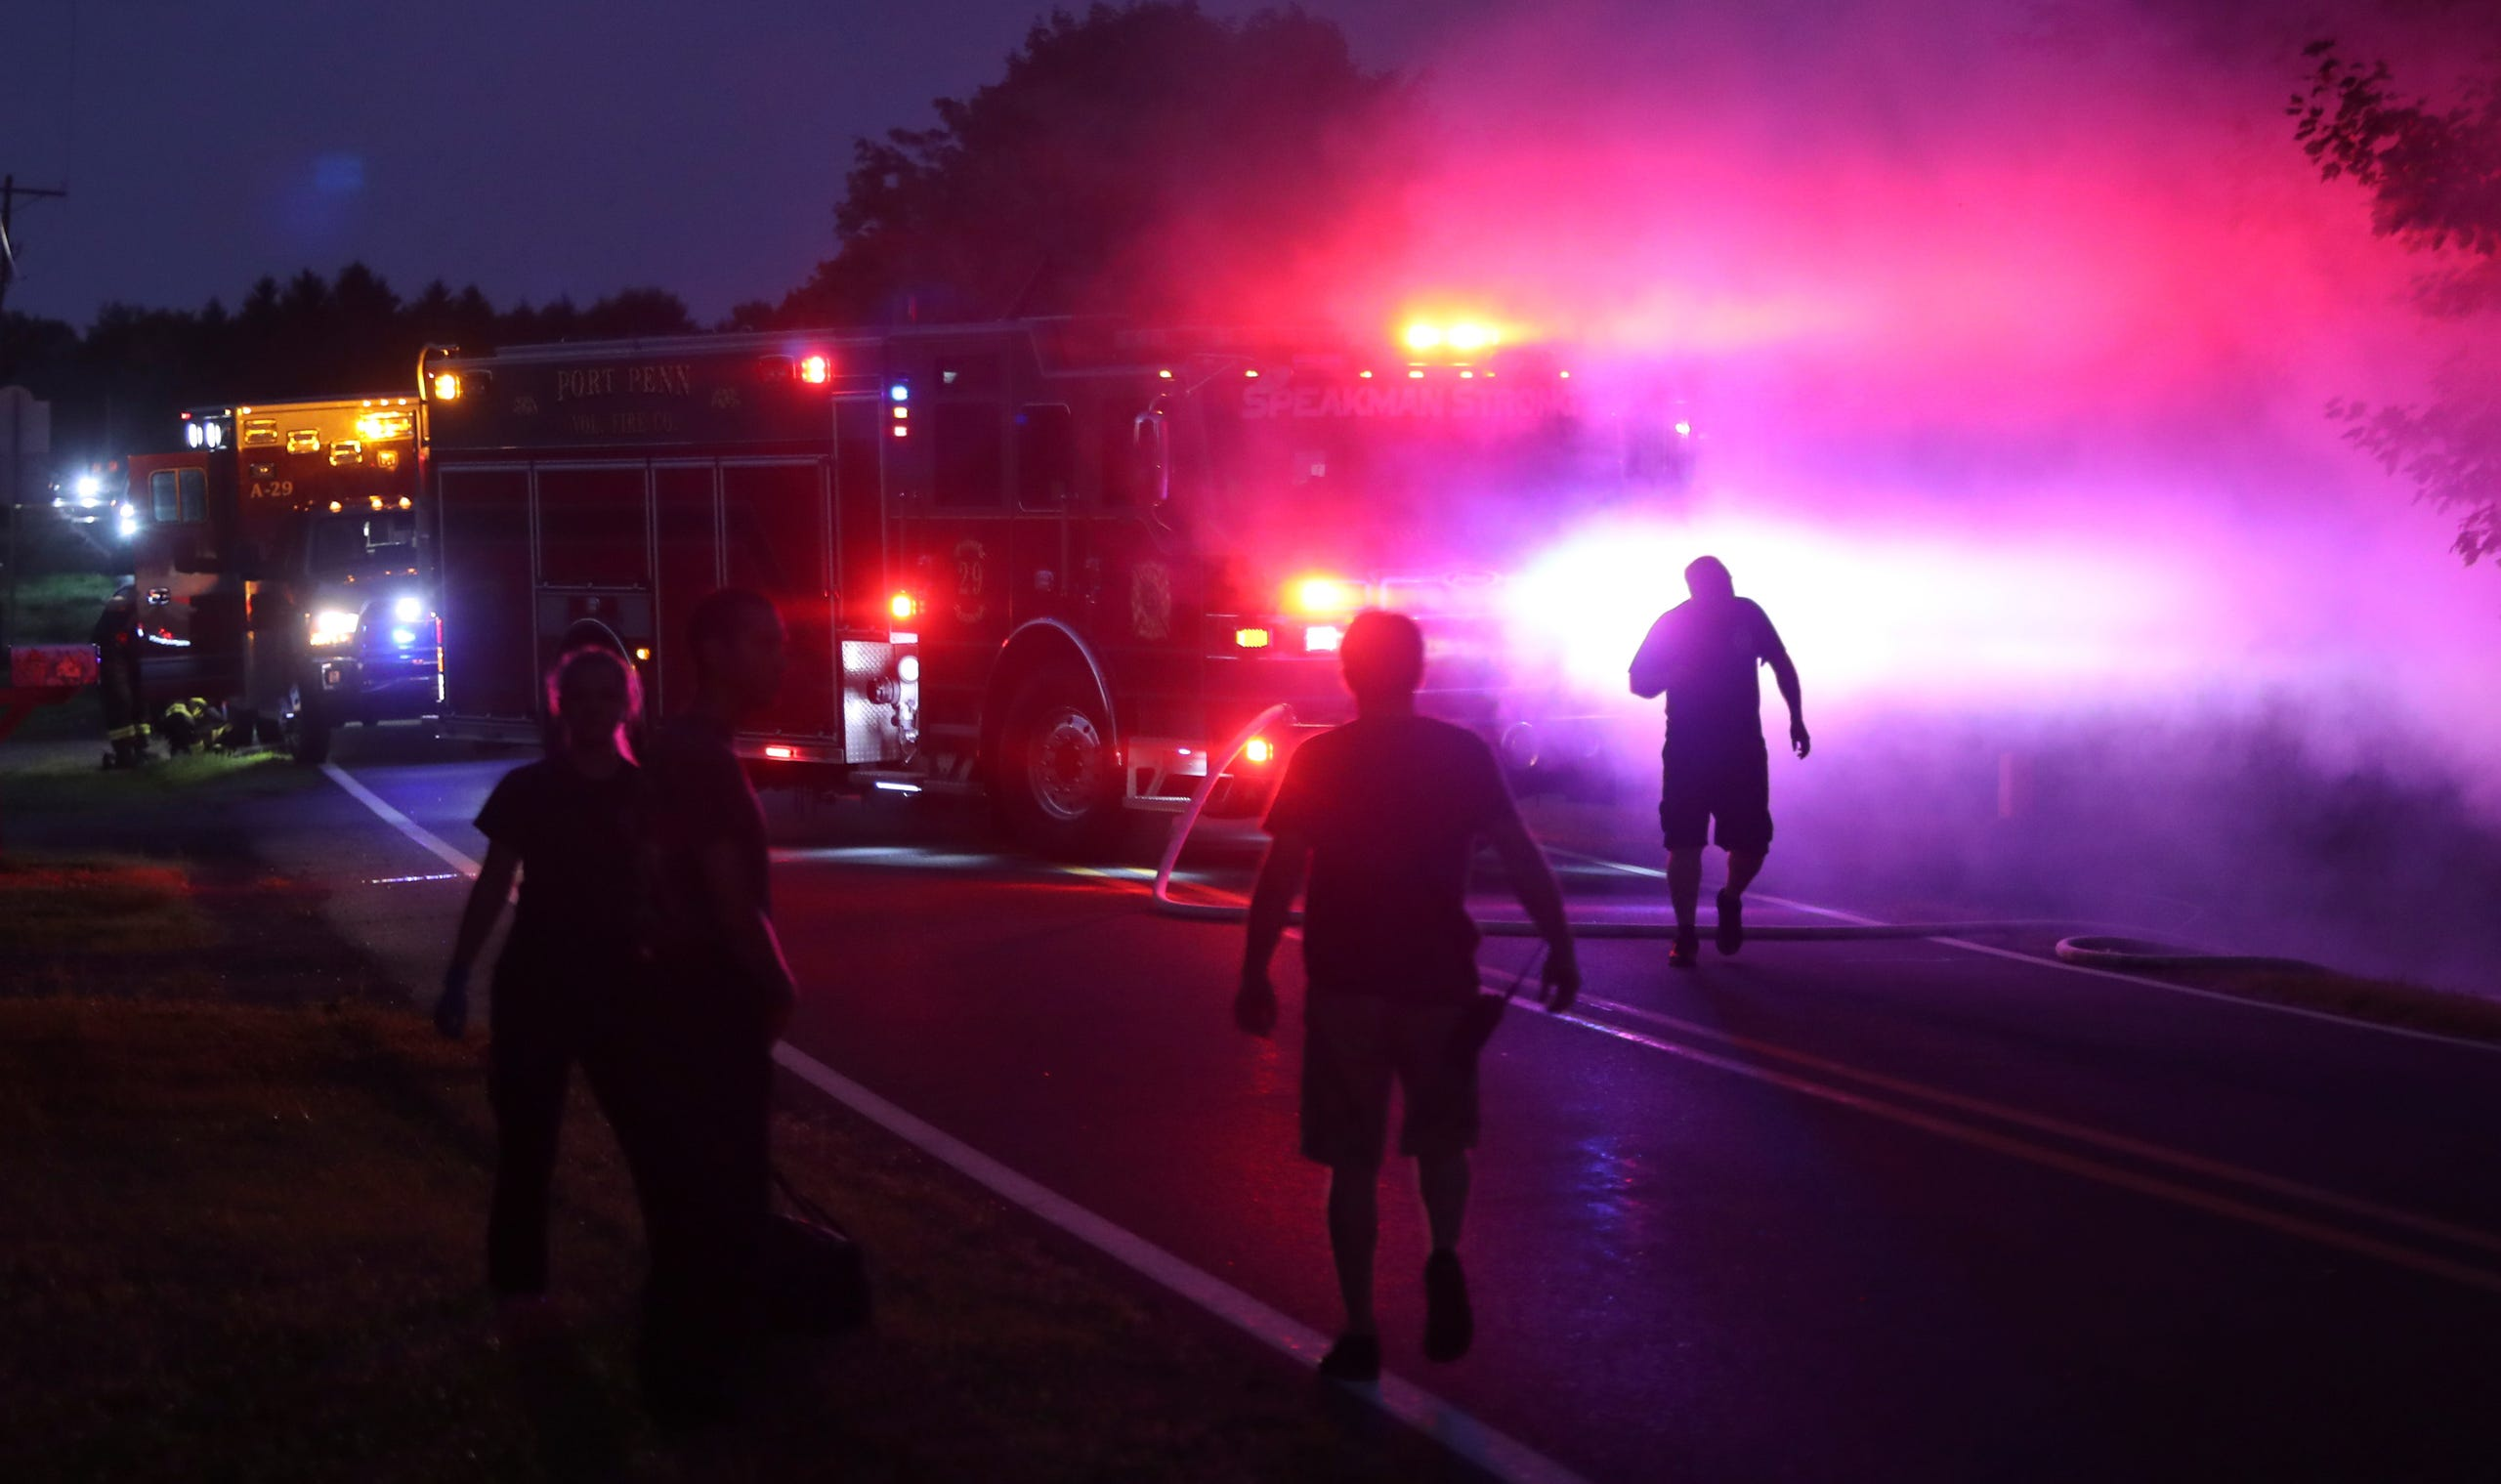 Fire consumes vehicle in fatal accident north of Odessa